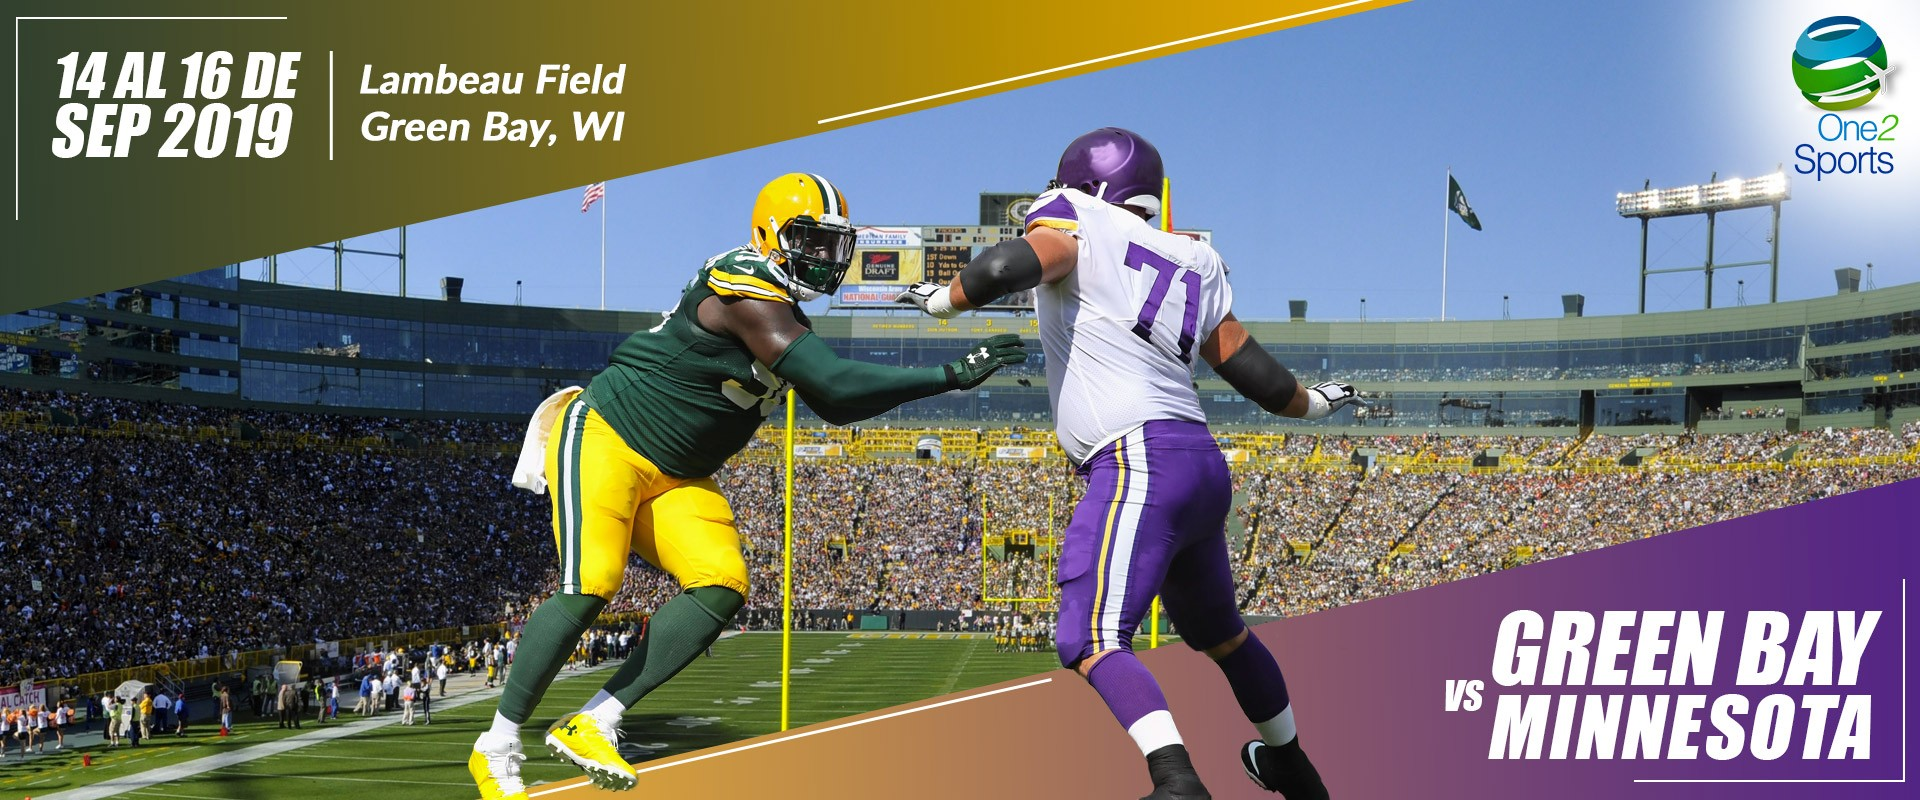 Green Bay vs Minnesota